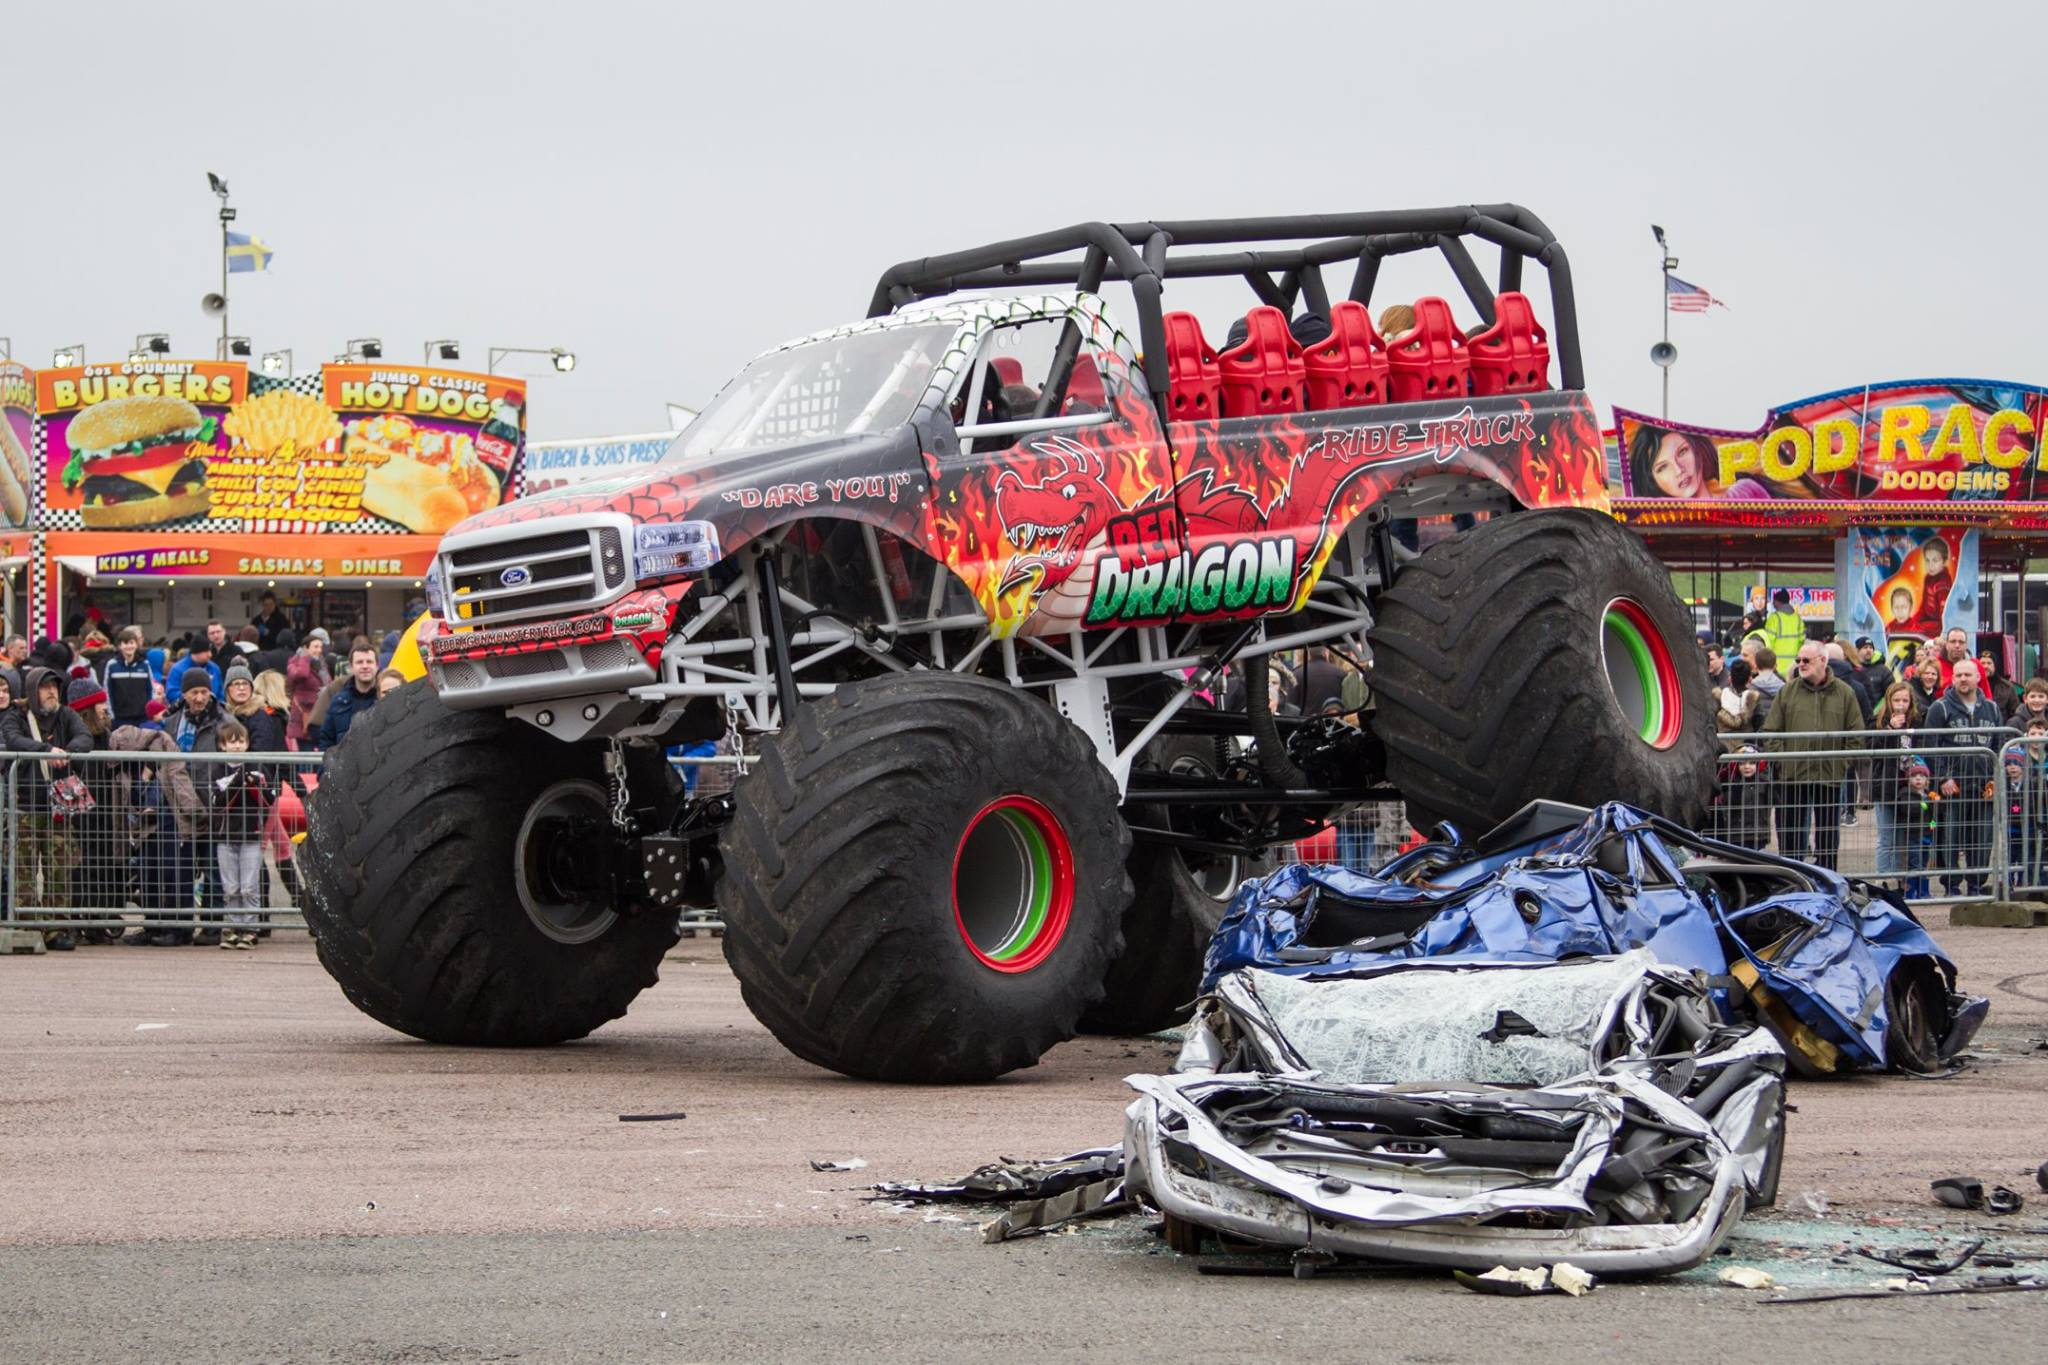 Ride the Red Dragon Monster Truck